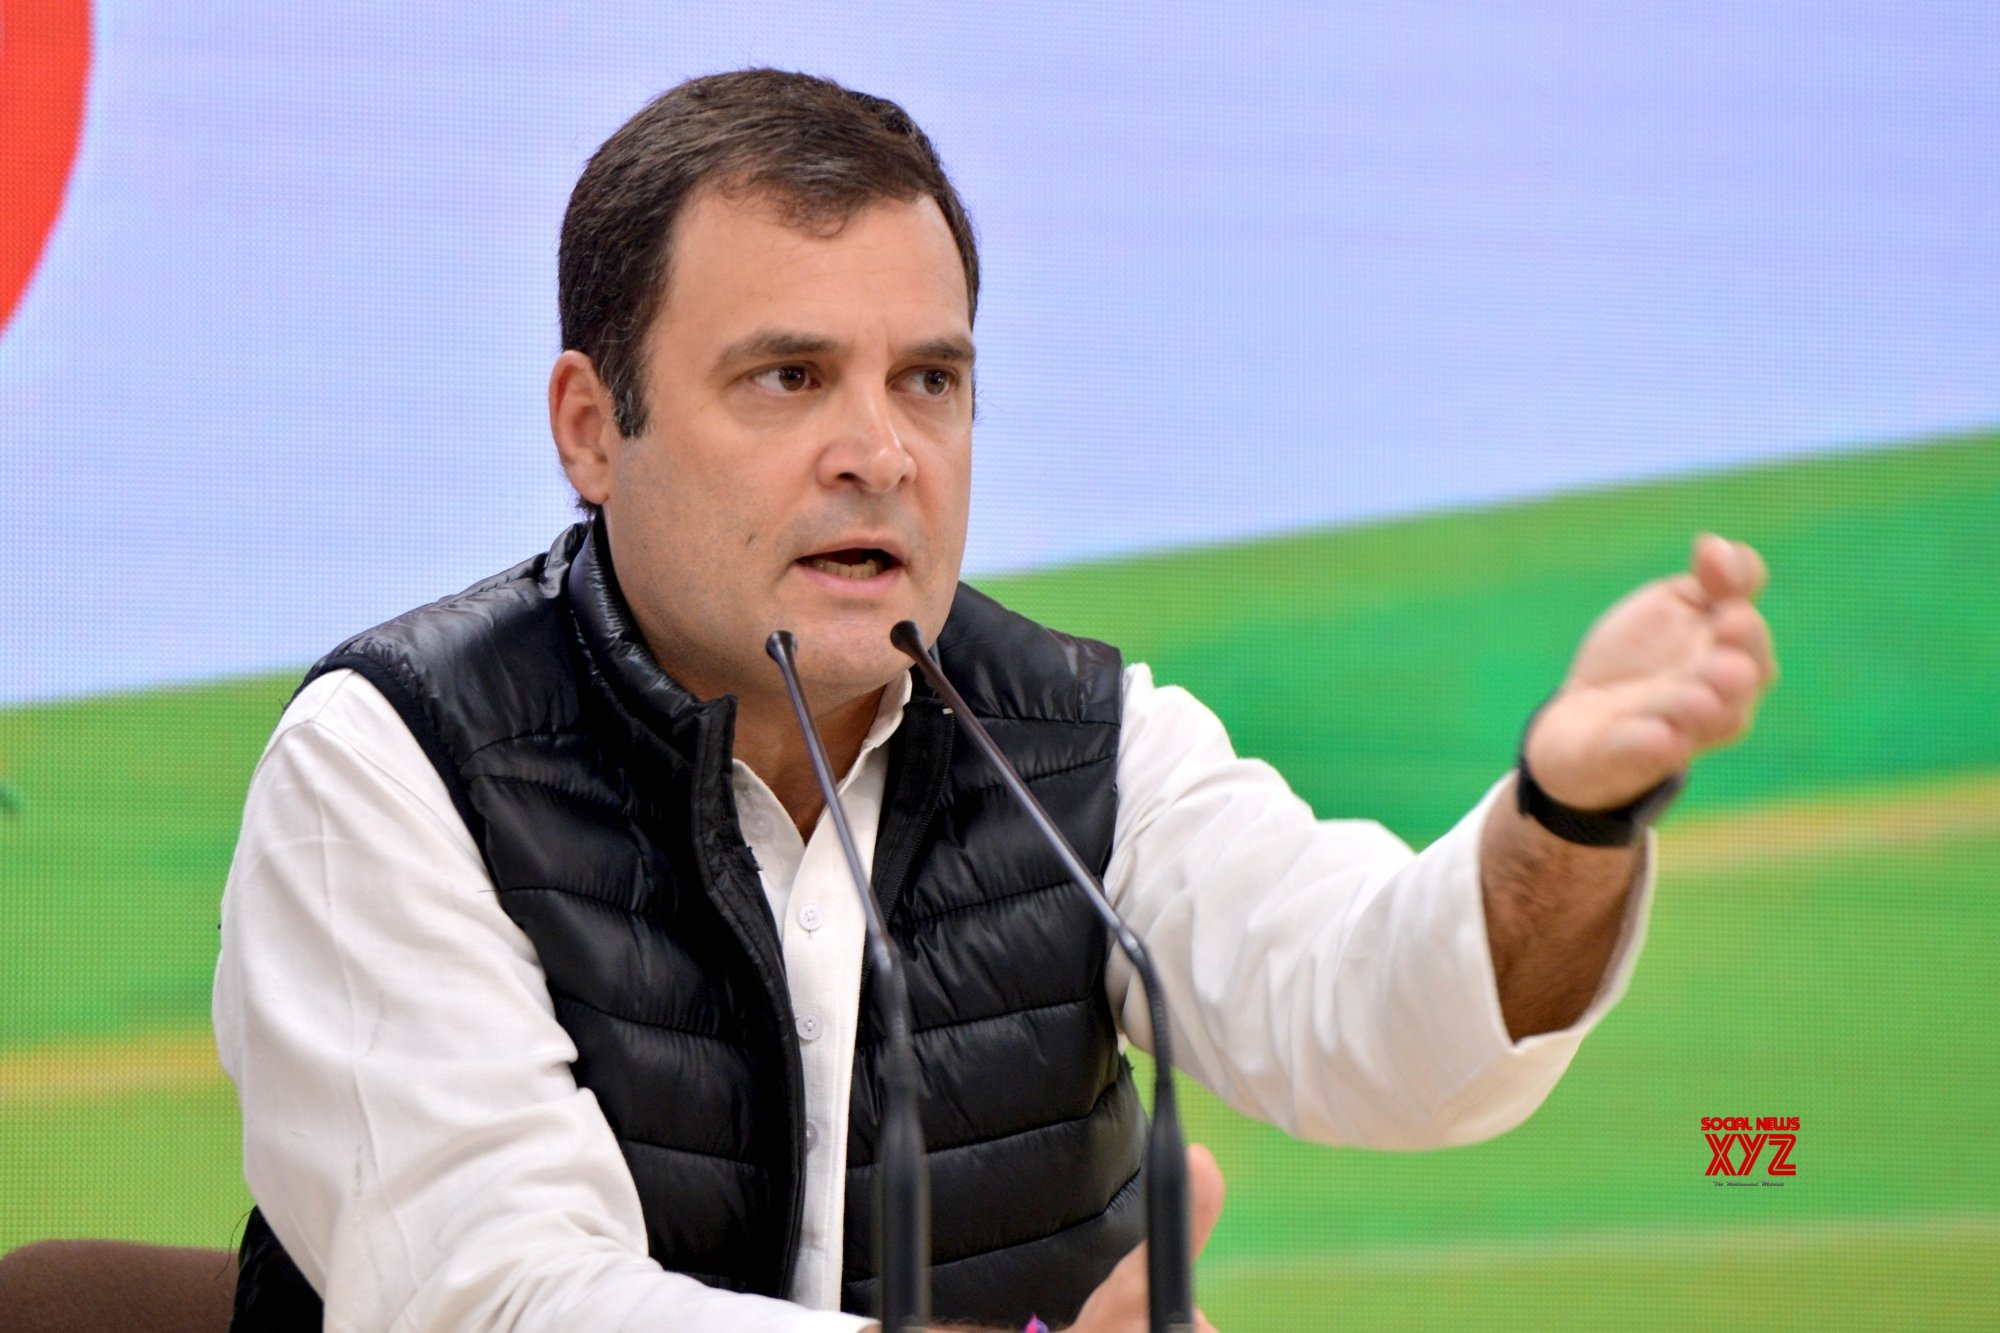 Rahul says future Harvard studies will be held on Modi's failed policies